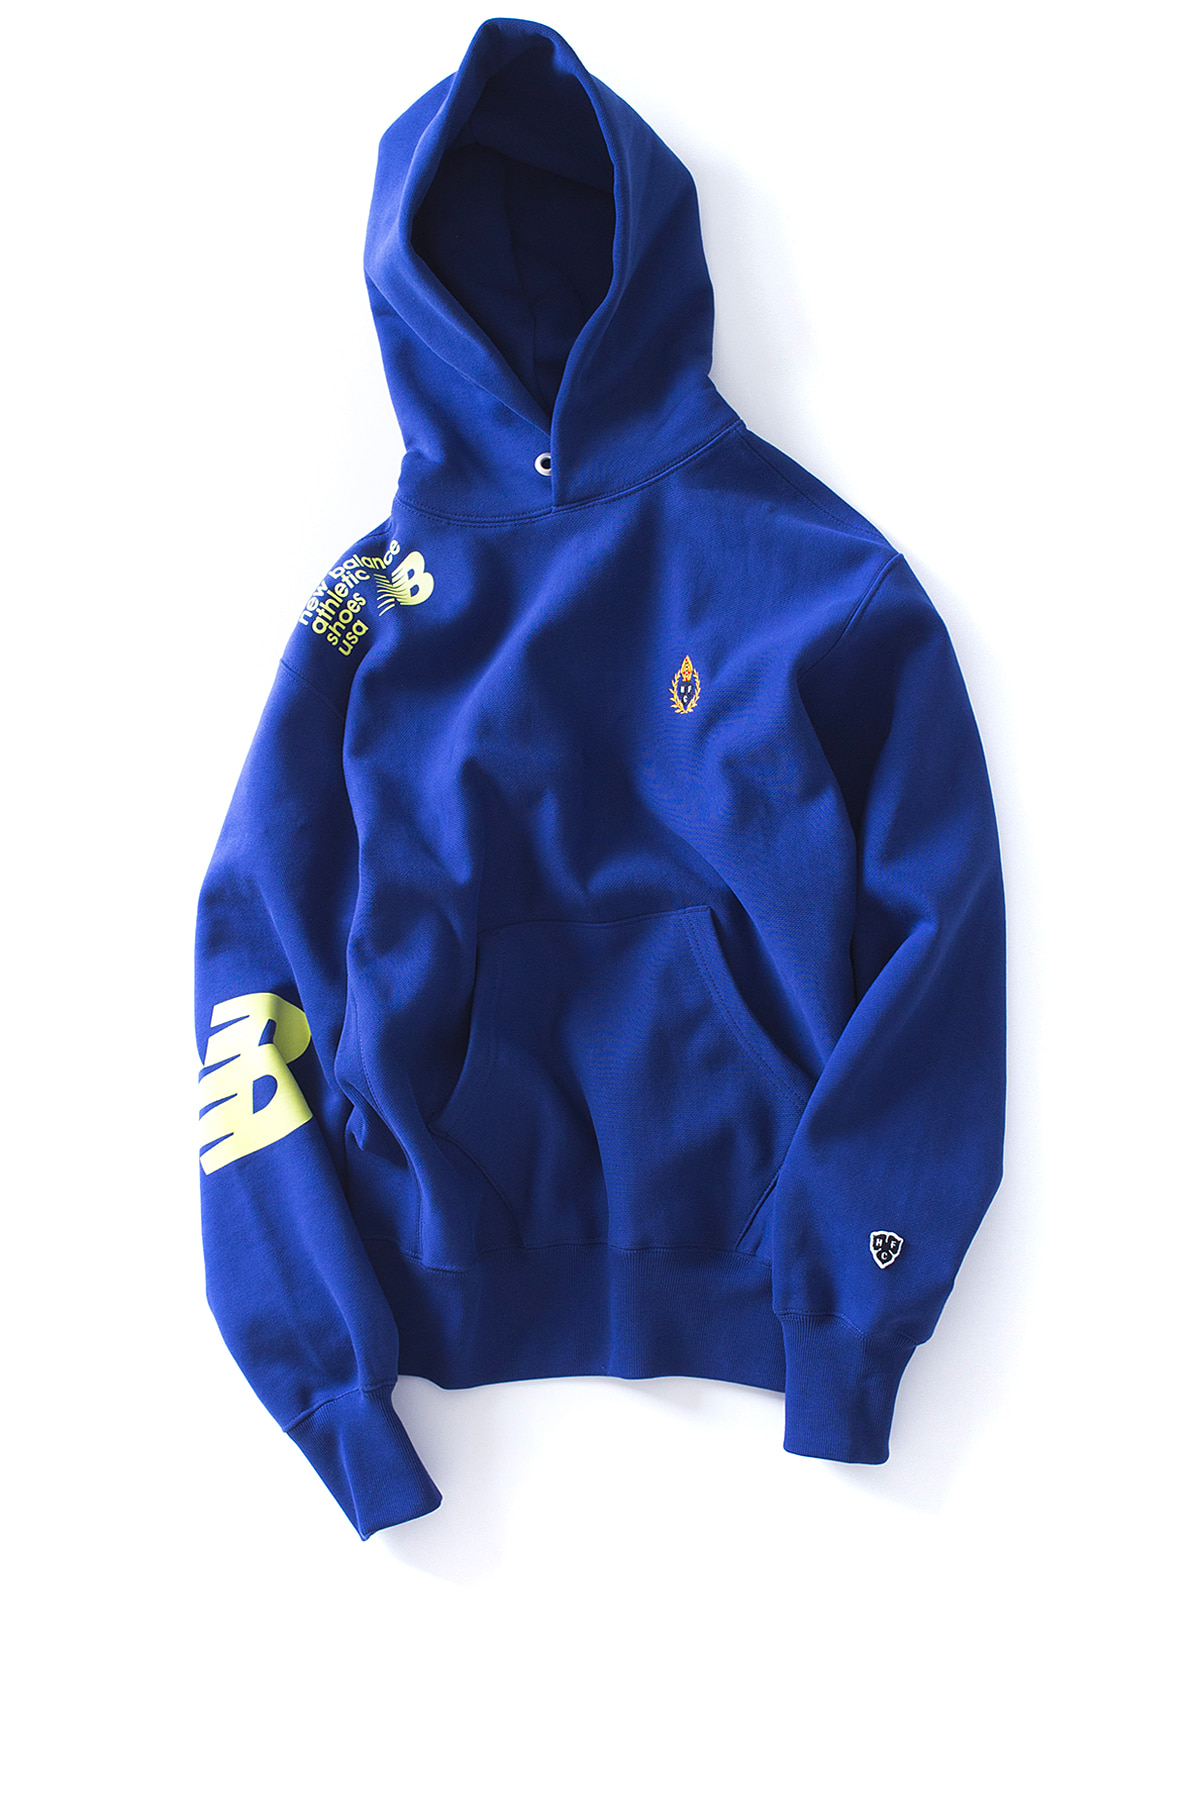 NB X Heritage Floss : Locker Room Hoodie (Navy)